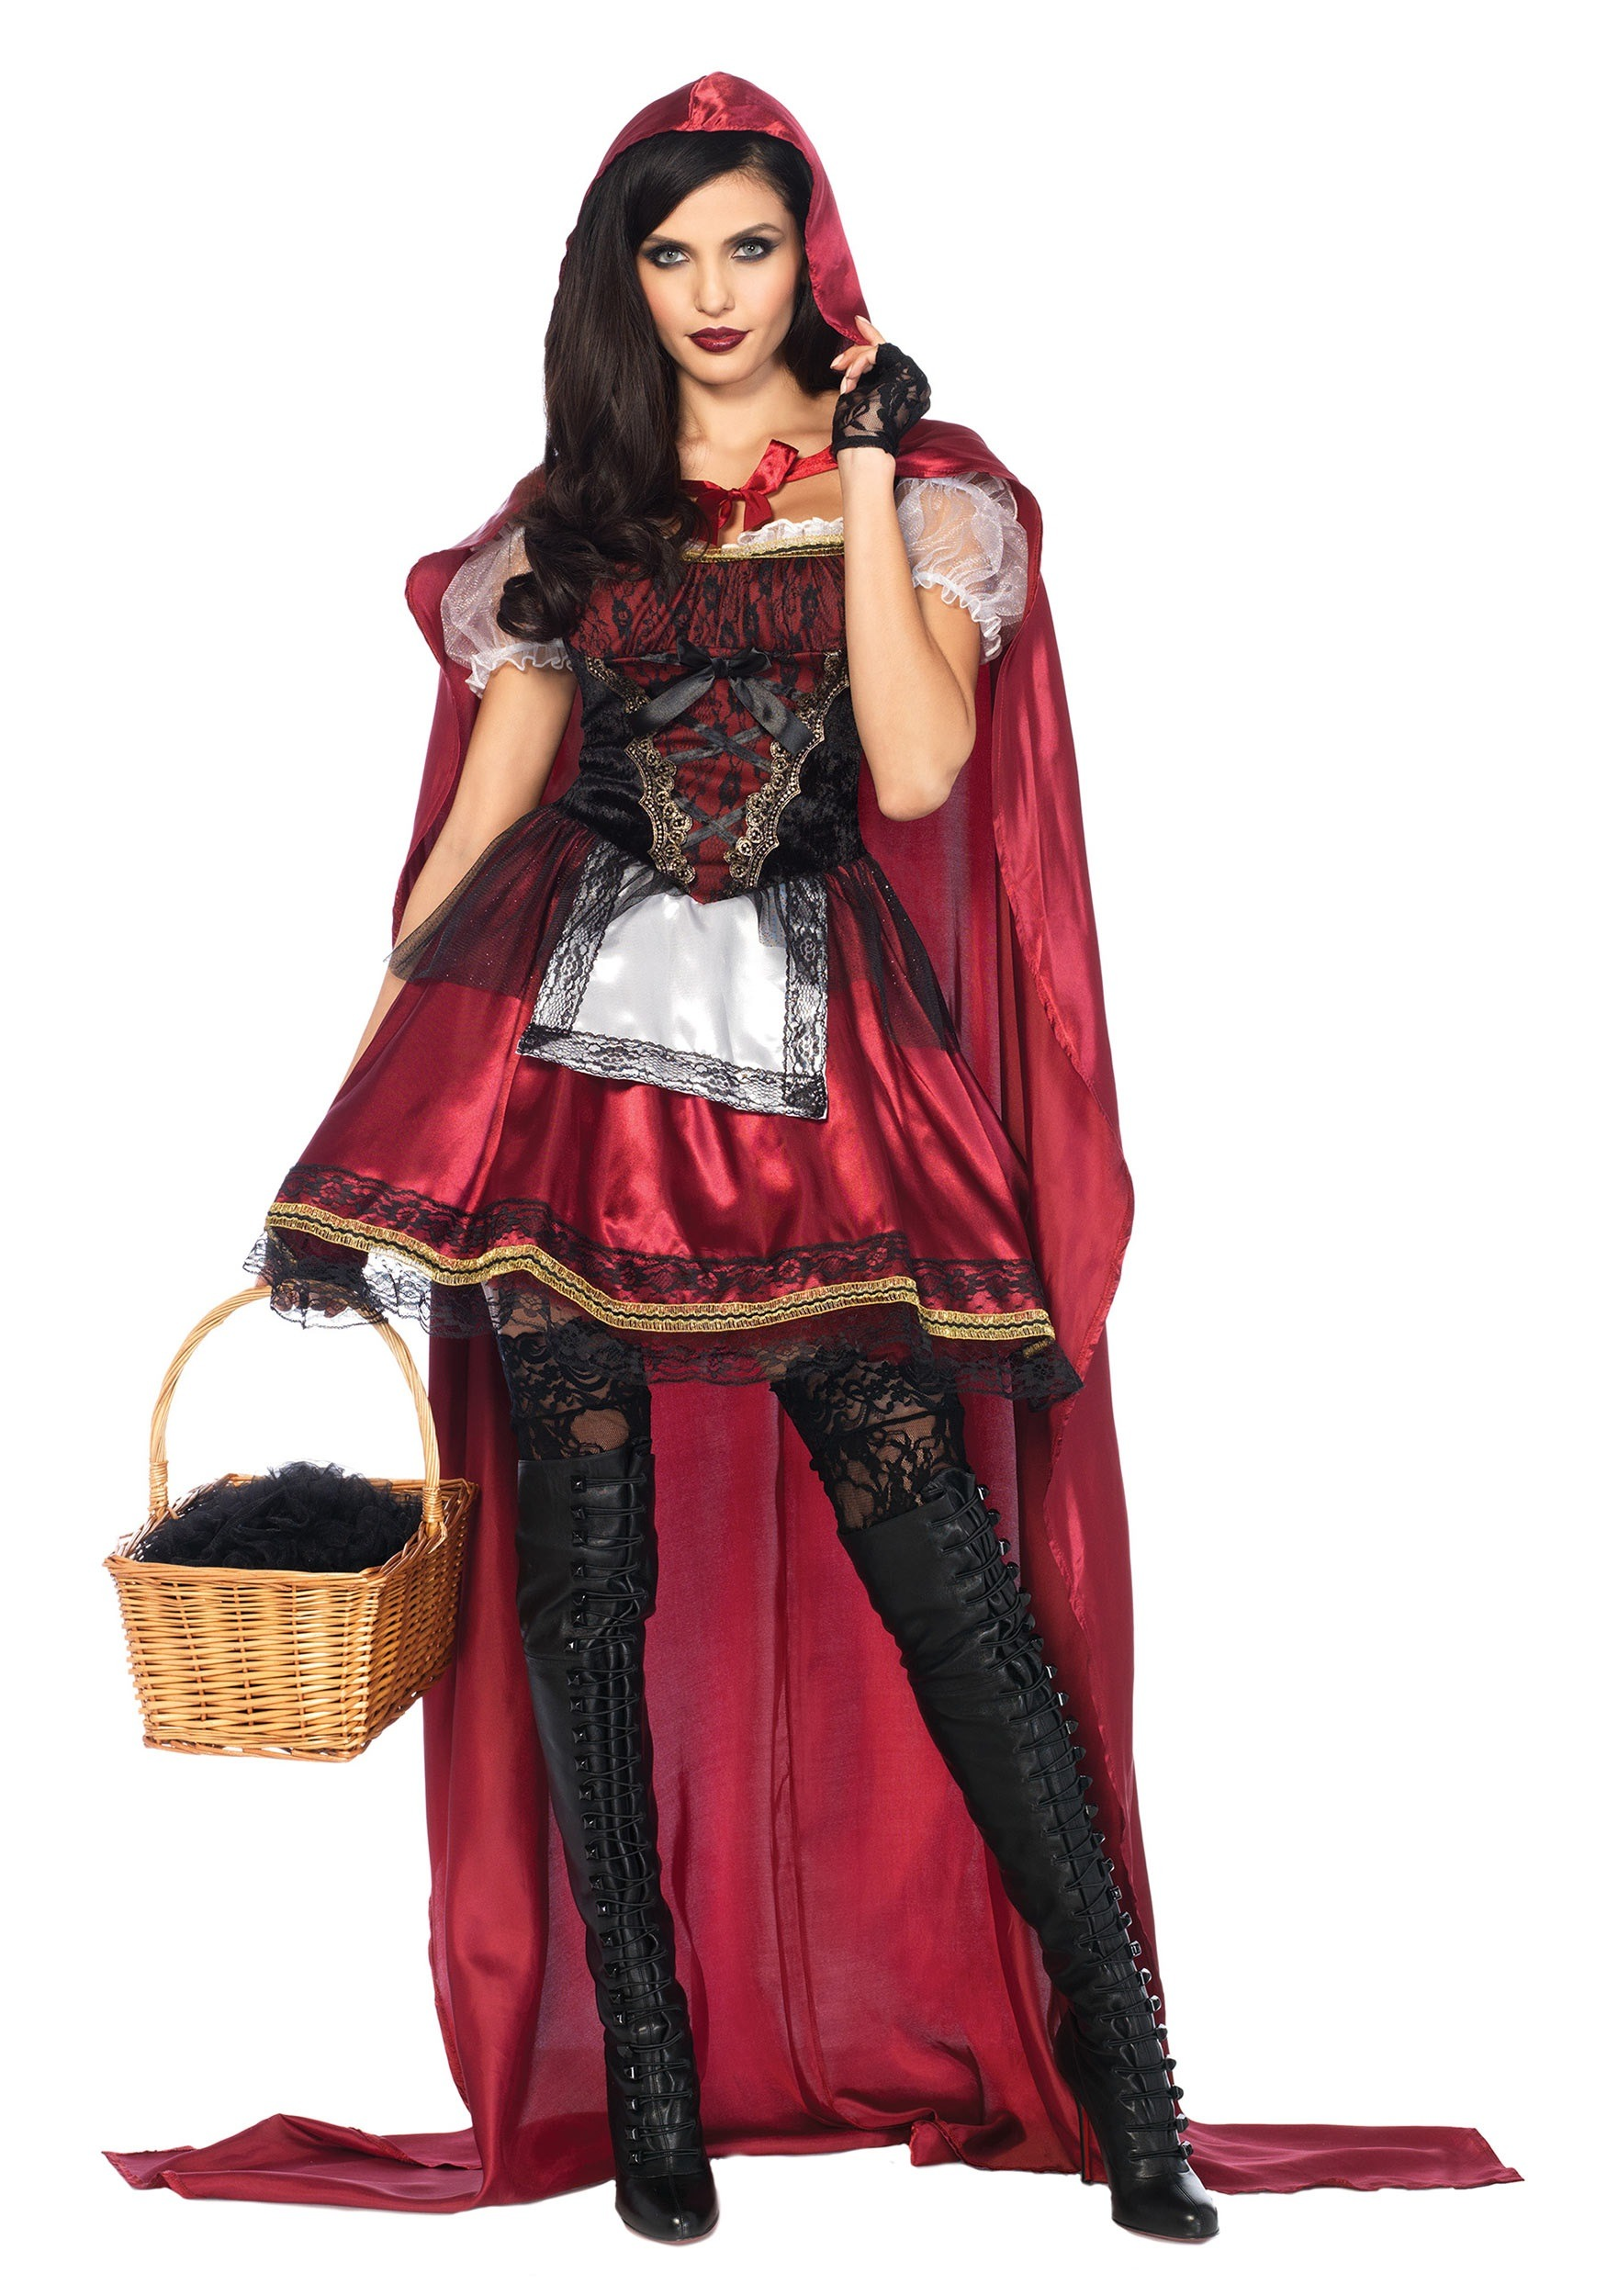 Women's Captivating Miss Red Costume